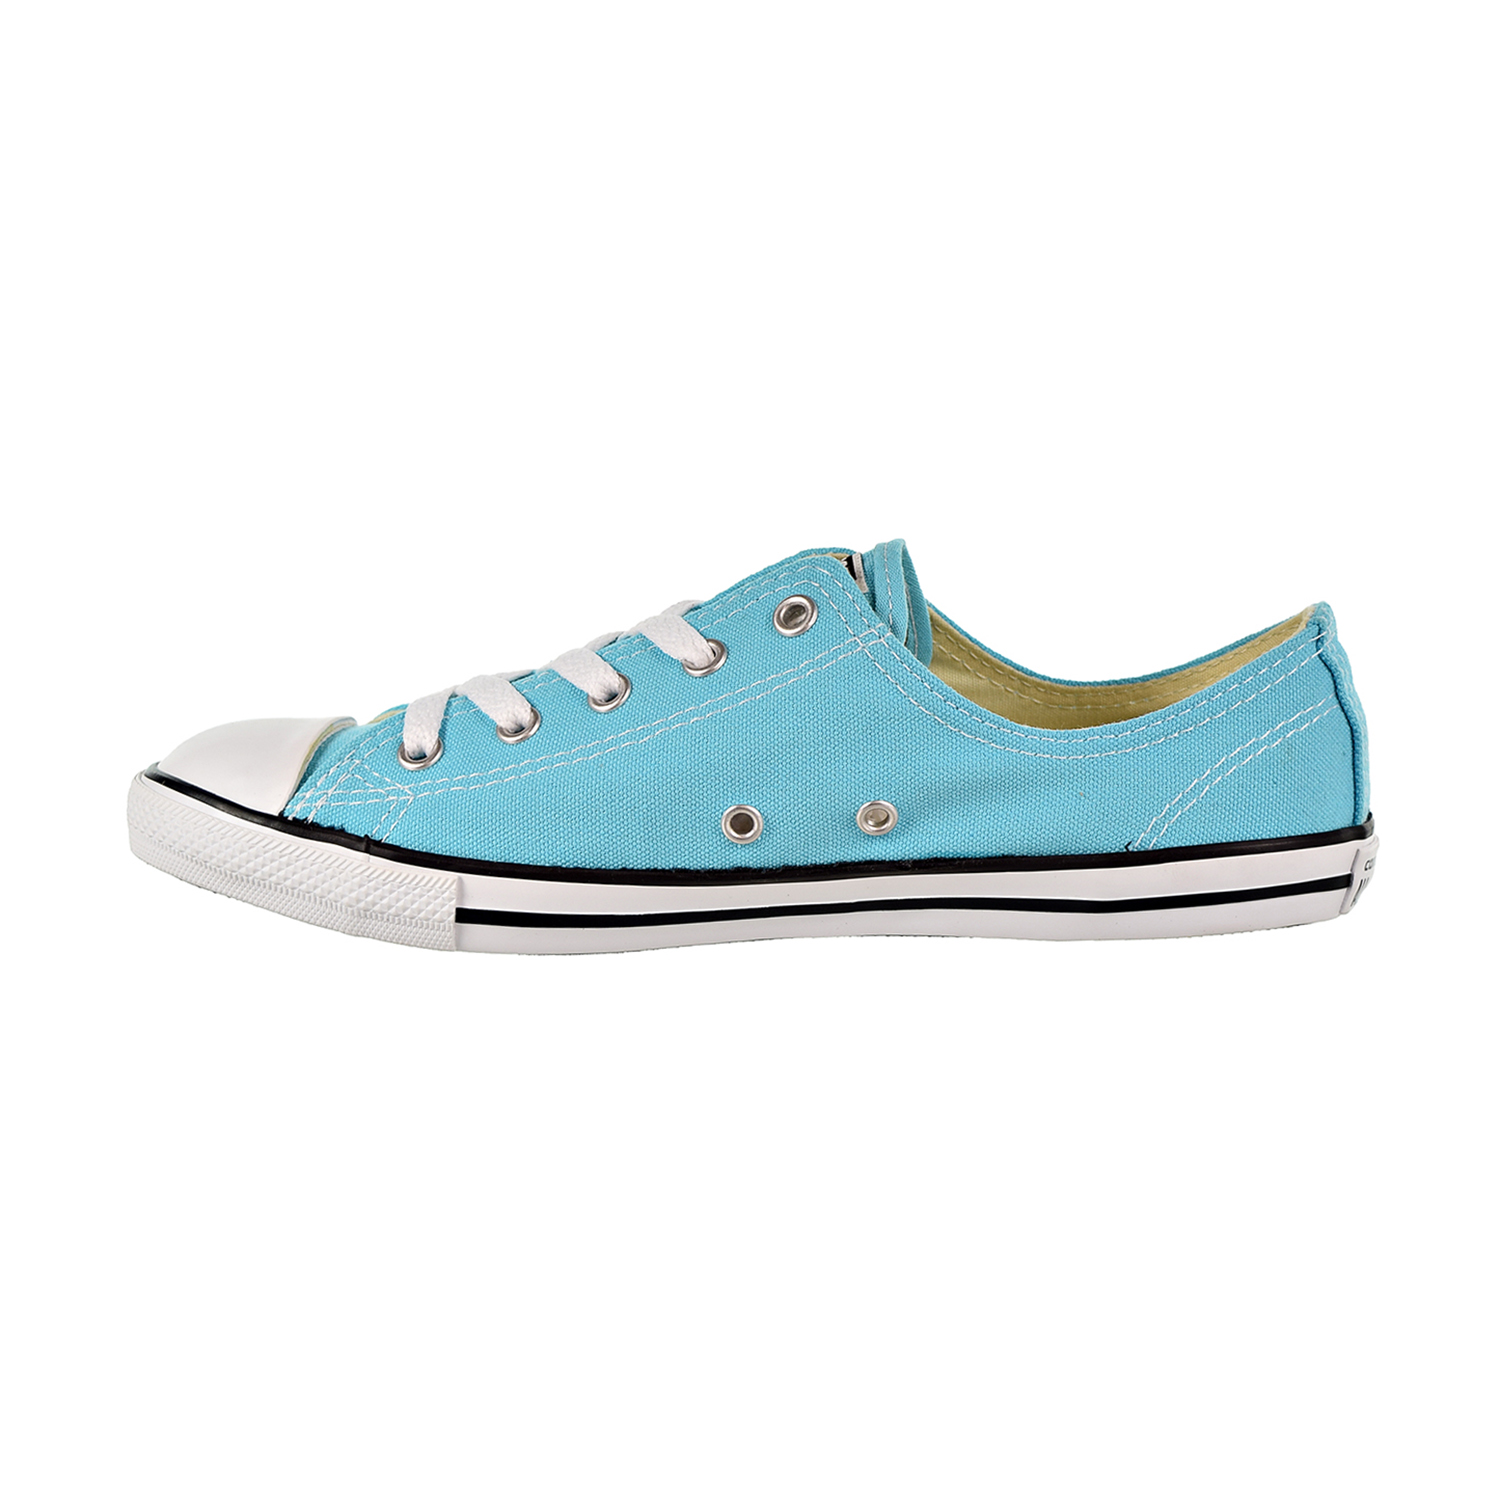 1a32f00f8429 Converse Chuck Taylor All Star Dainty Ox Women s Shoes Fresh  Cyan Black White 556155f